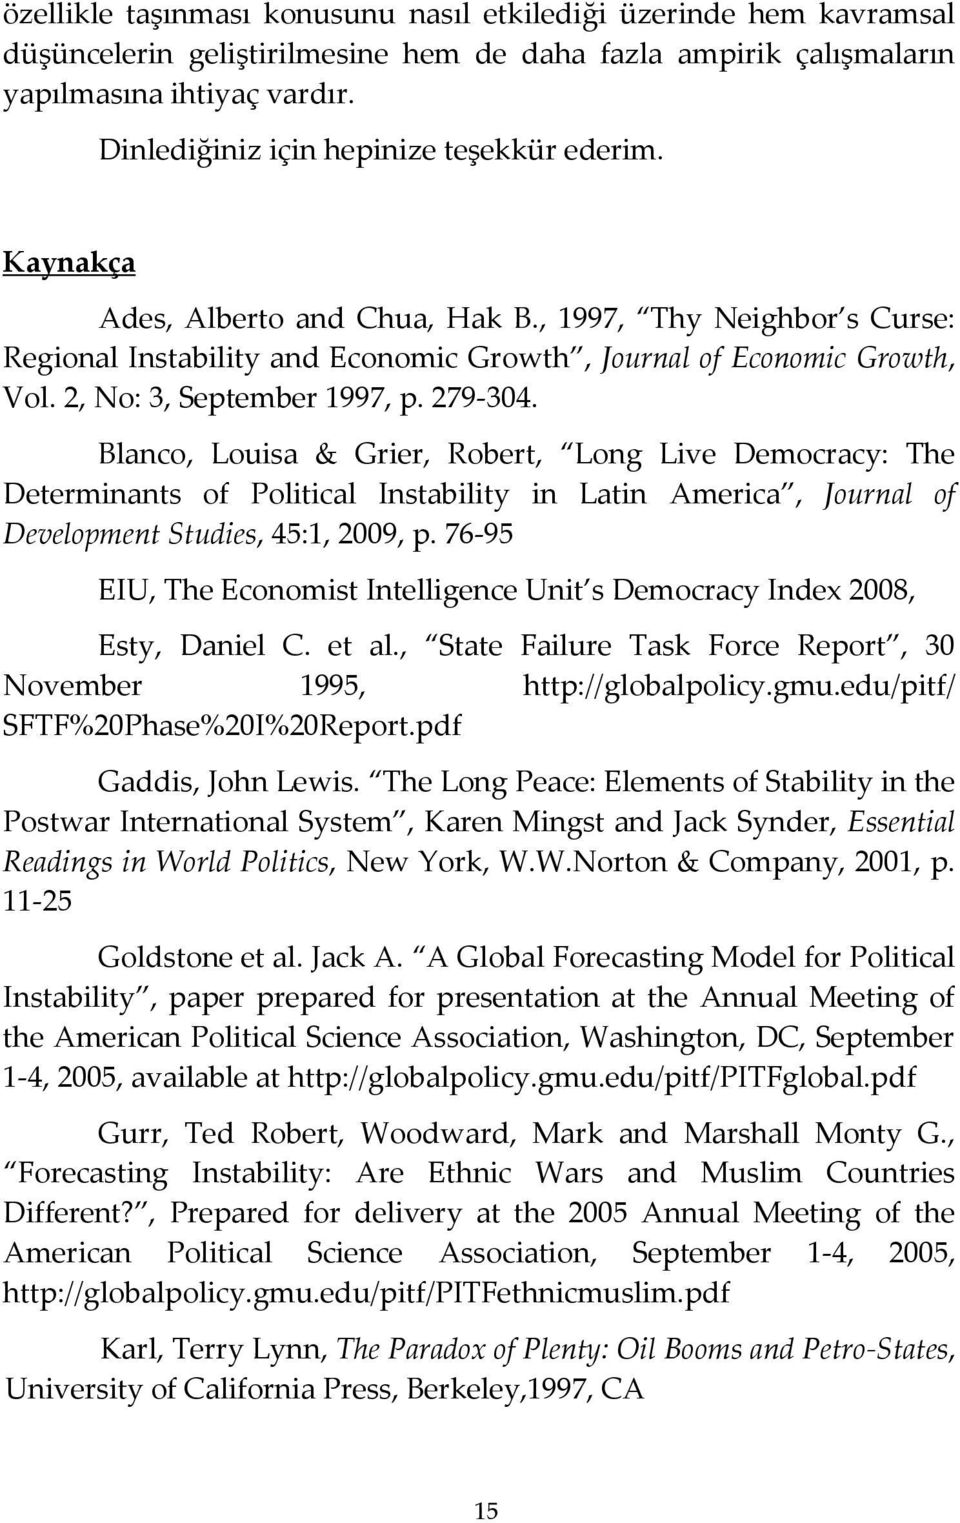 2, No: 3, September 1997, p. 279-304. Blanco, Louisa & Grier, Robert, Long Live Democracy: The Determinants of Political Instability in Latin America, Journal of Development Studies, 45:1, 2009, p.